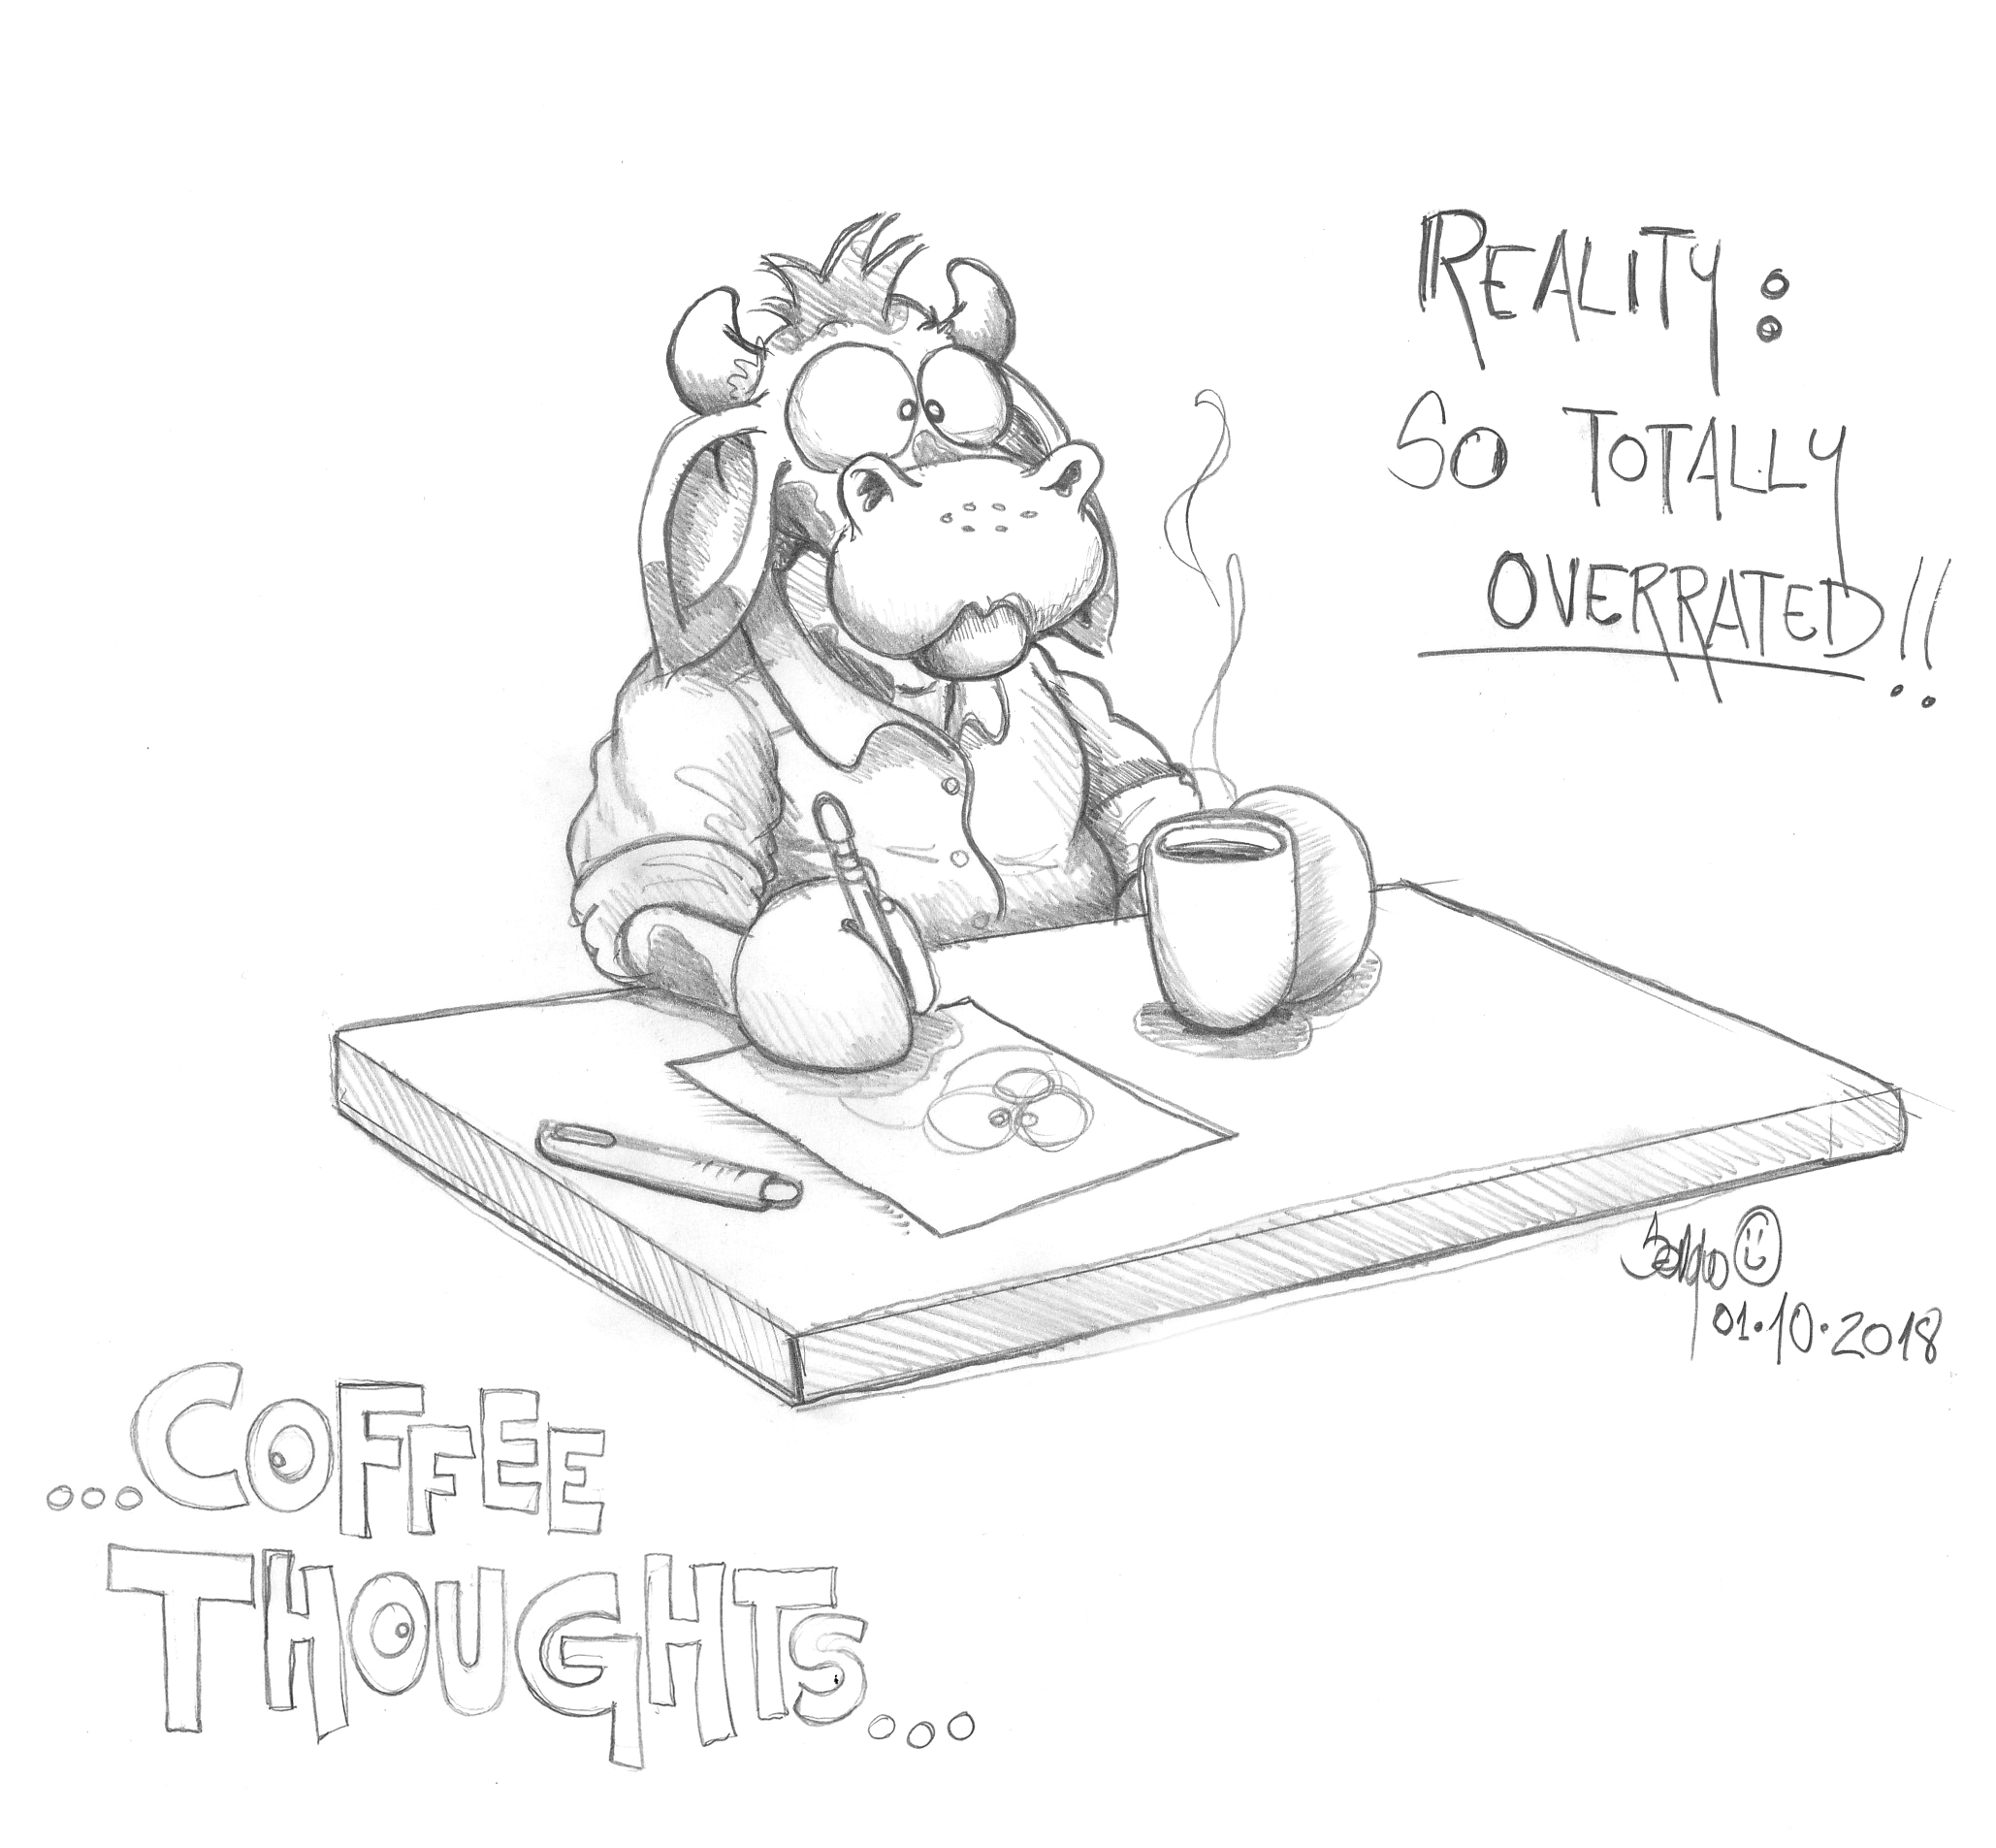 coffee-thoughts_real